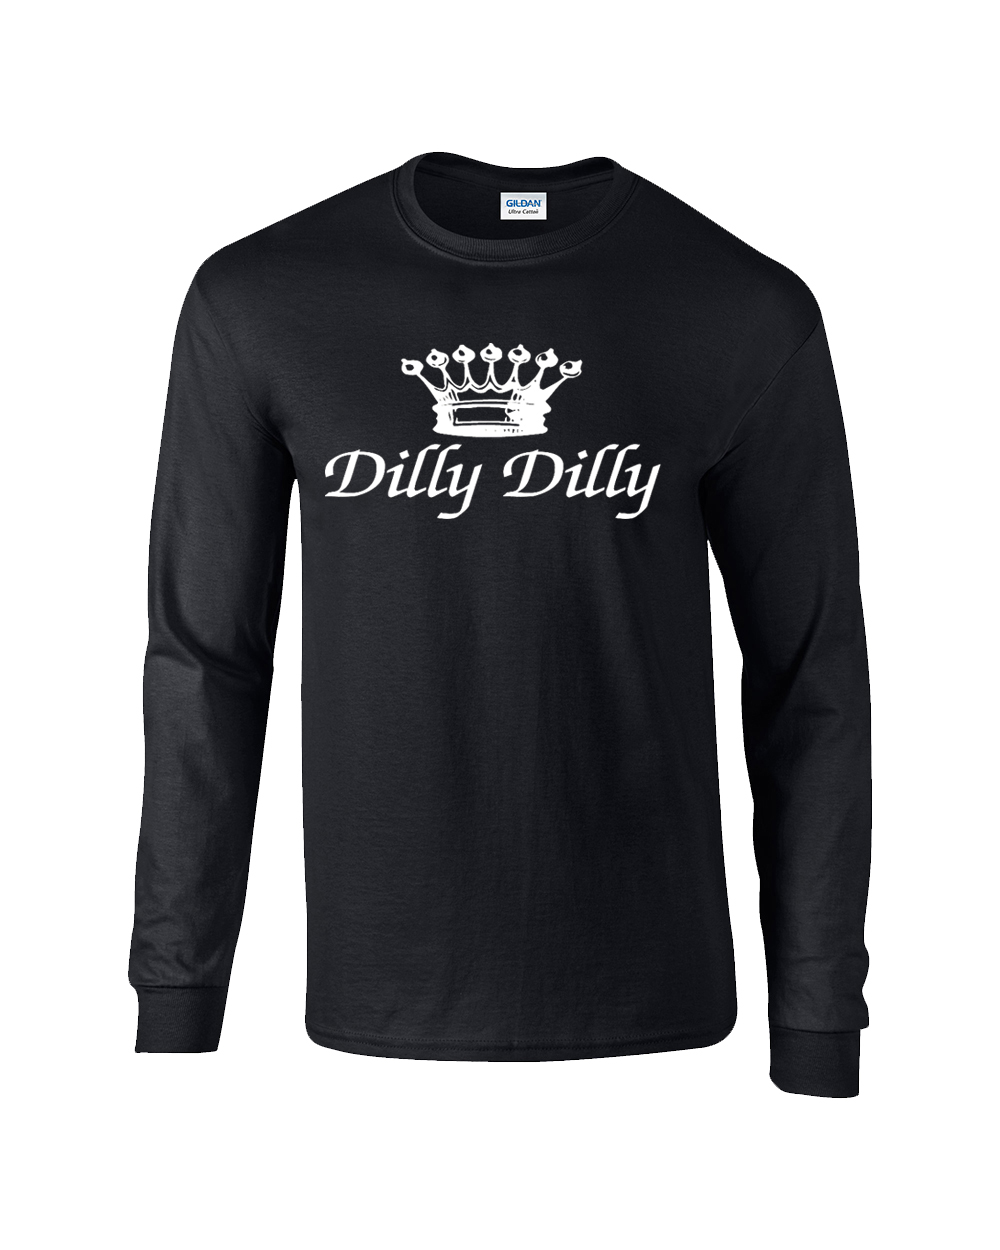 b98e6f71 Funny Beer Drinking Dilly Dilly Script Adult Long Sleeve T-Shirt-Black